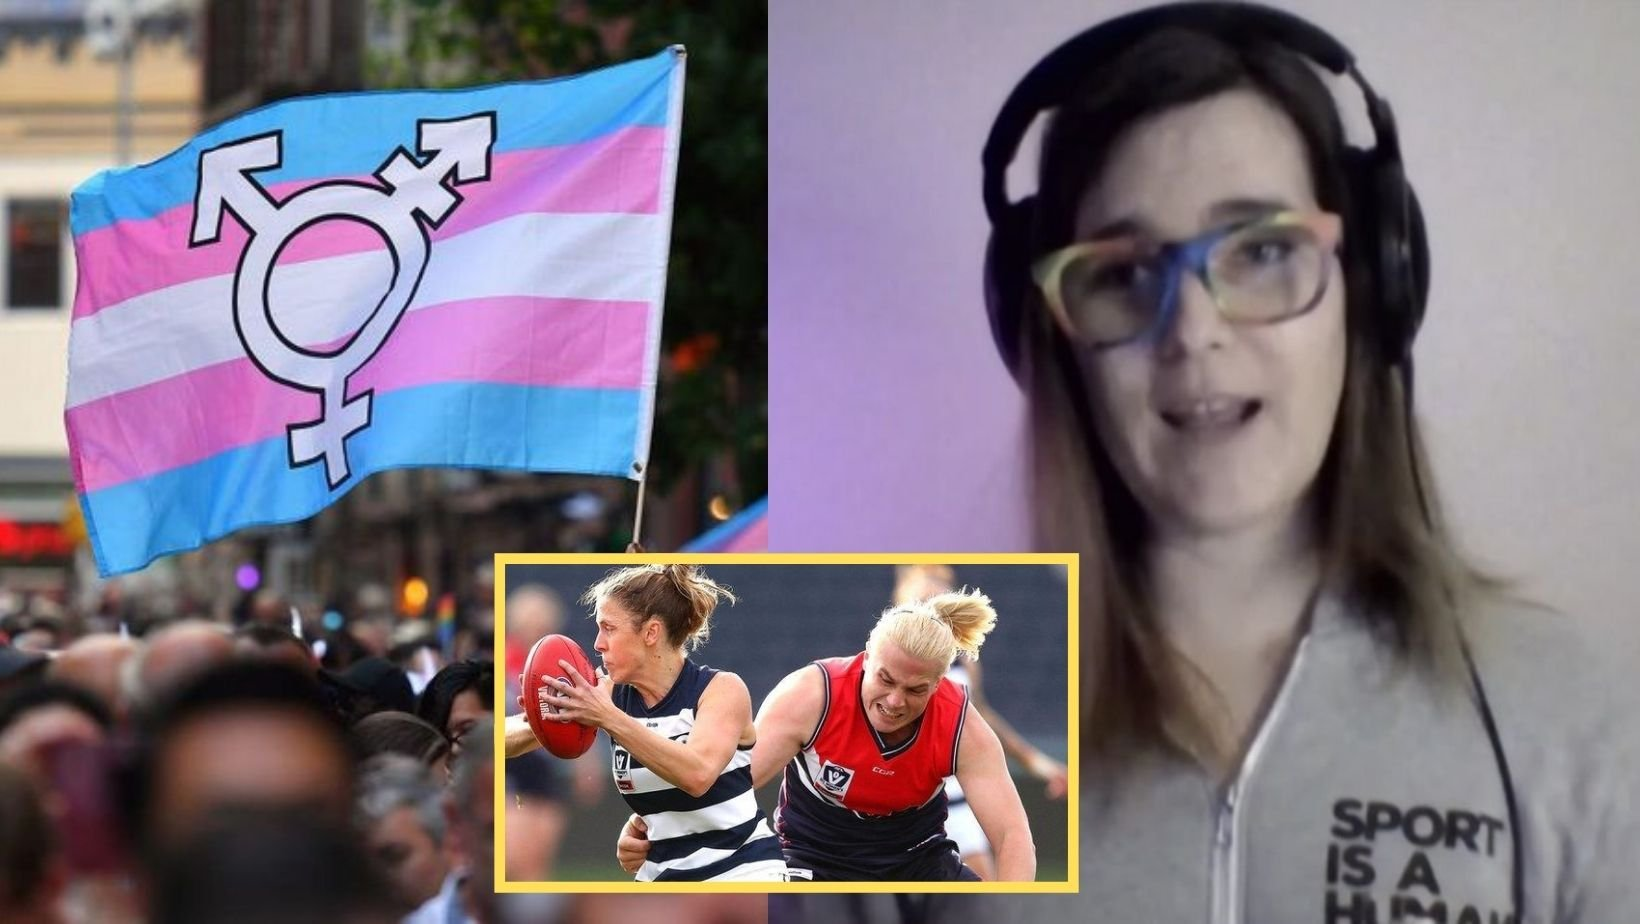 1 22.jpg?resize=412,275 - Doctor Claims There's No Evidence That Transgender Girls Perform Better In Sports Than Cisgender Girls